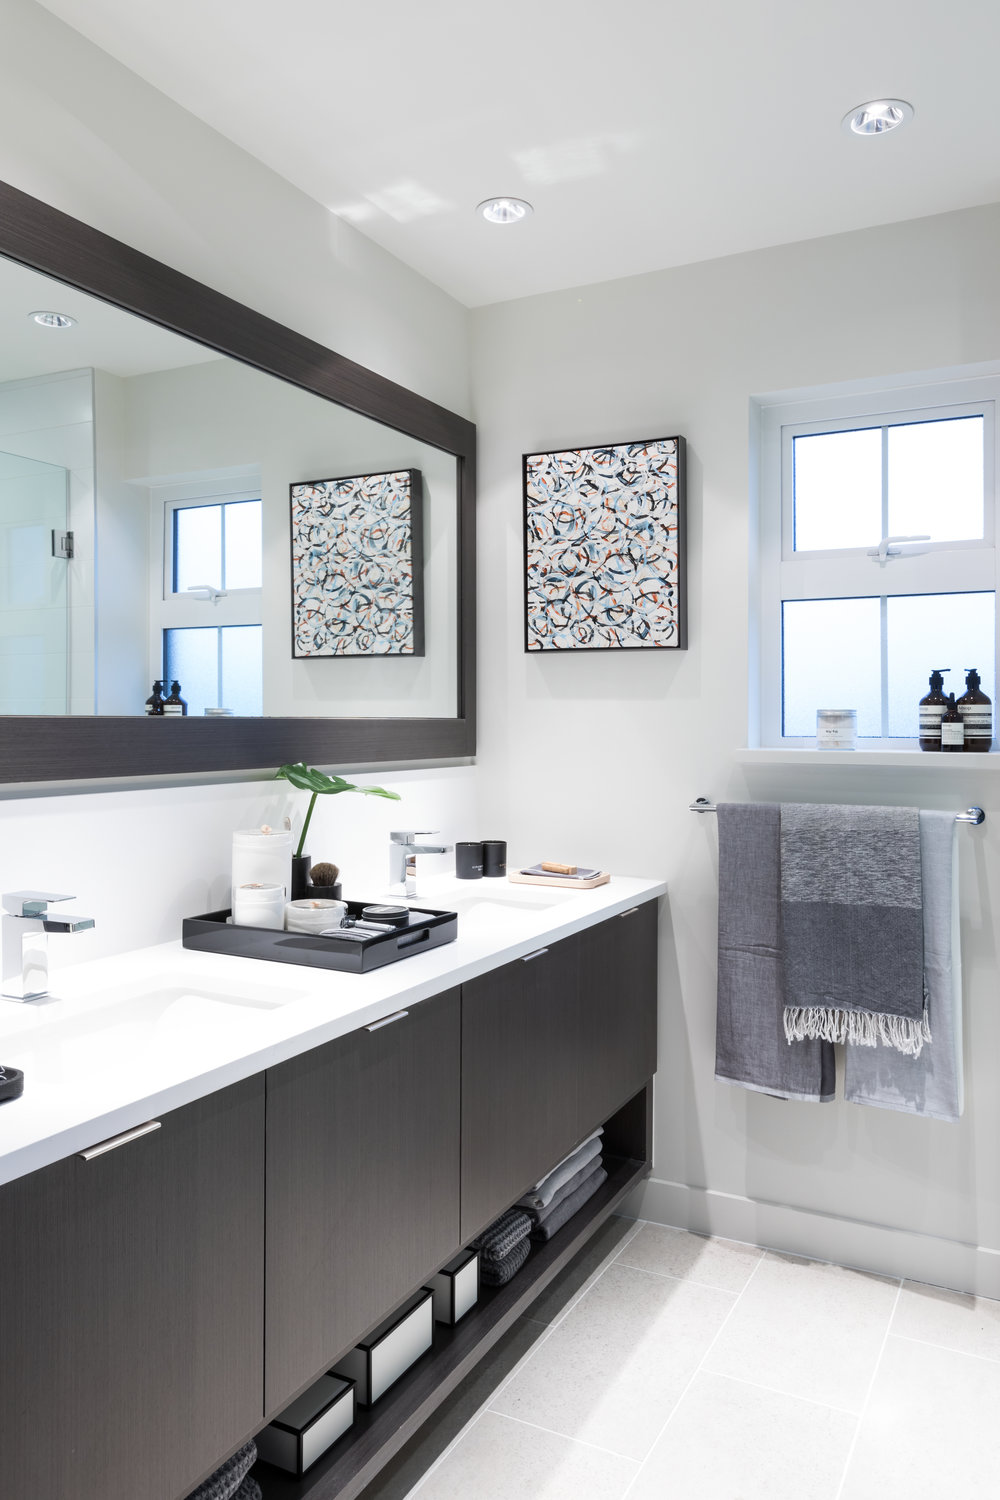 Alabaster_Osler_0163_Master Ensuite (Credit Ema Peter Photography).JPG